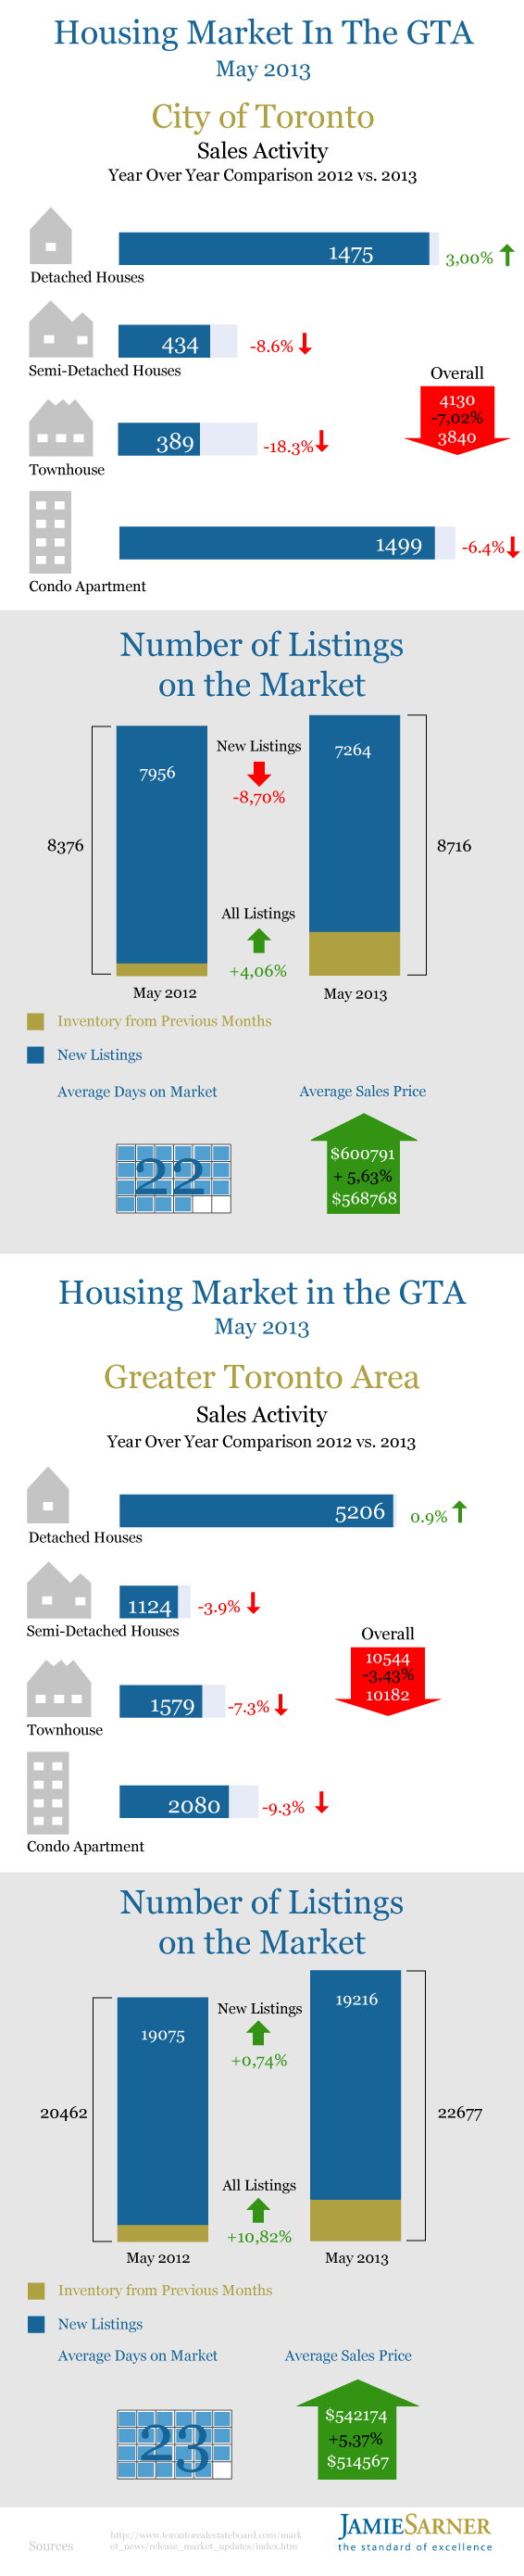 Toronto Real estate market report may 2013 infographic by Jamie Sarner png